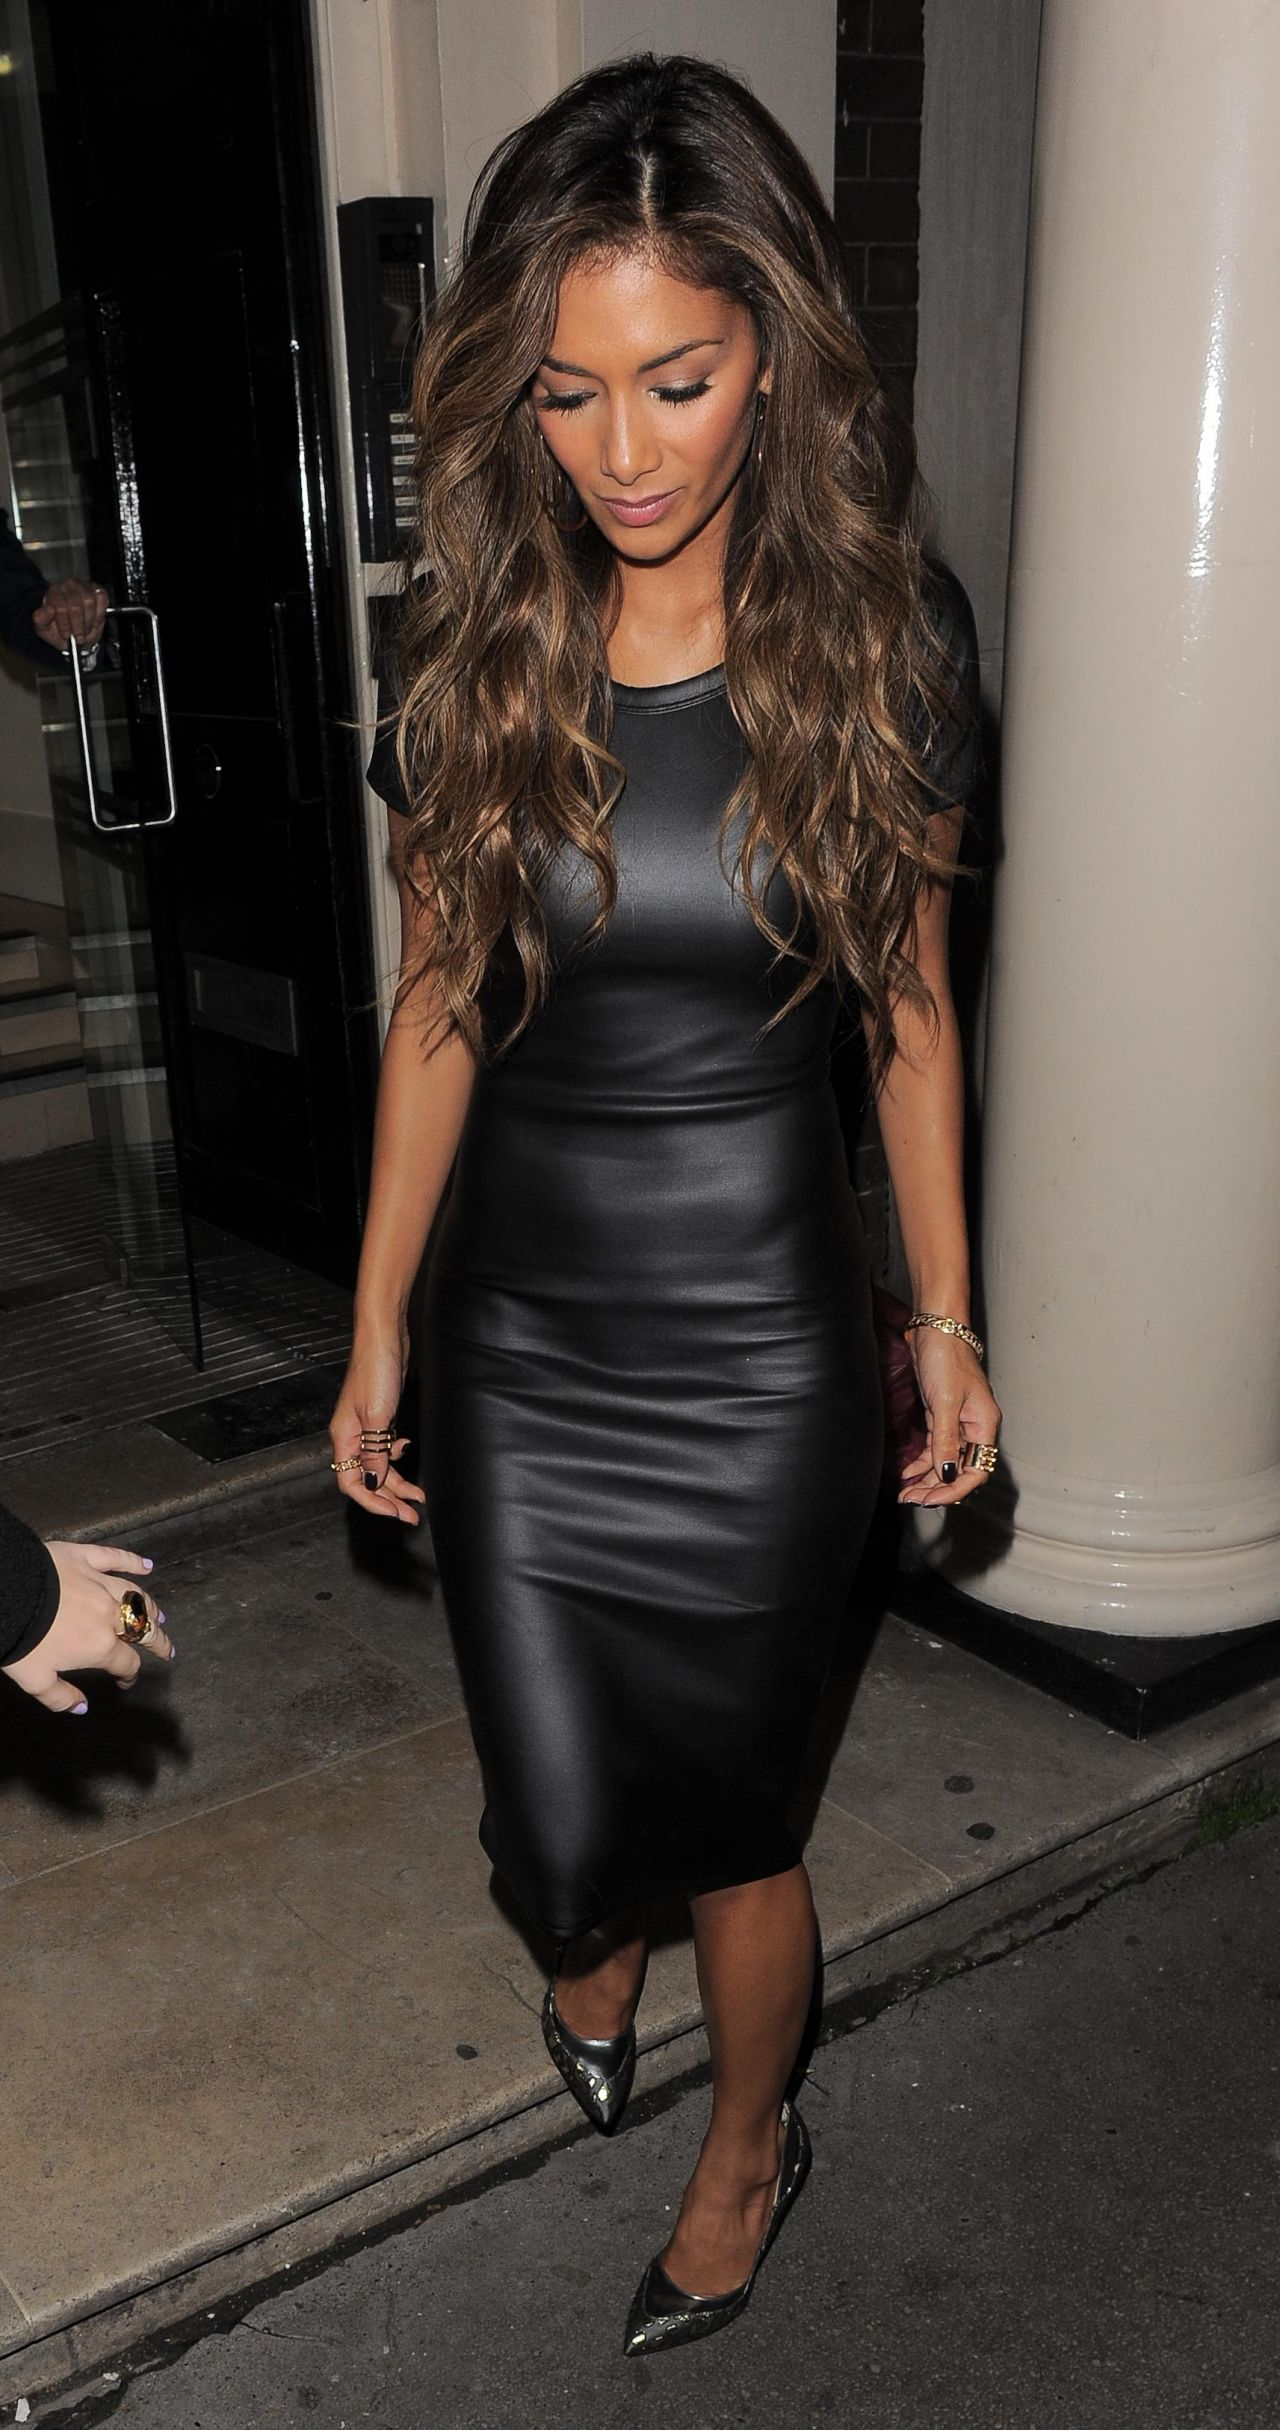 Nicole Scherzinger Street Style  in Leather Dress